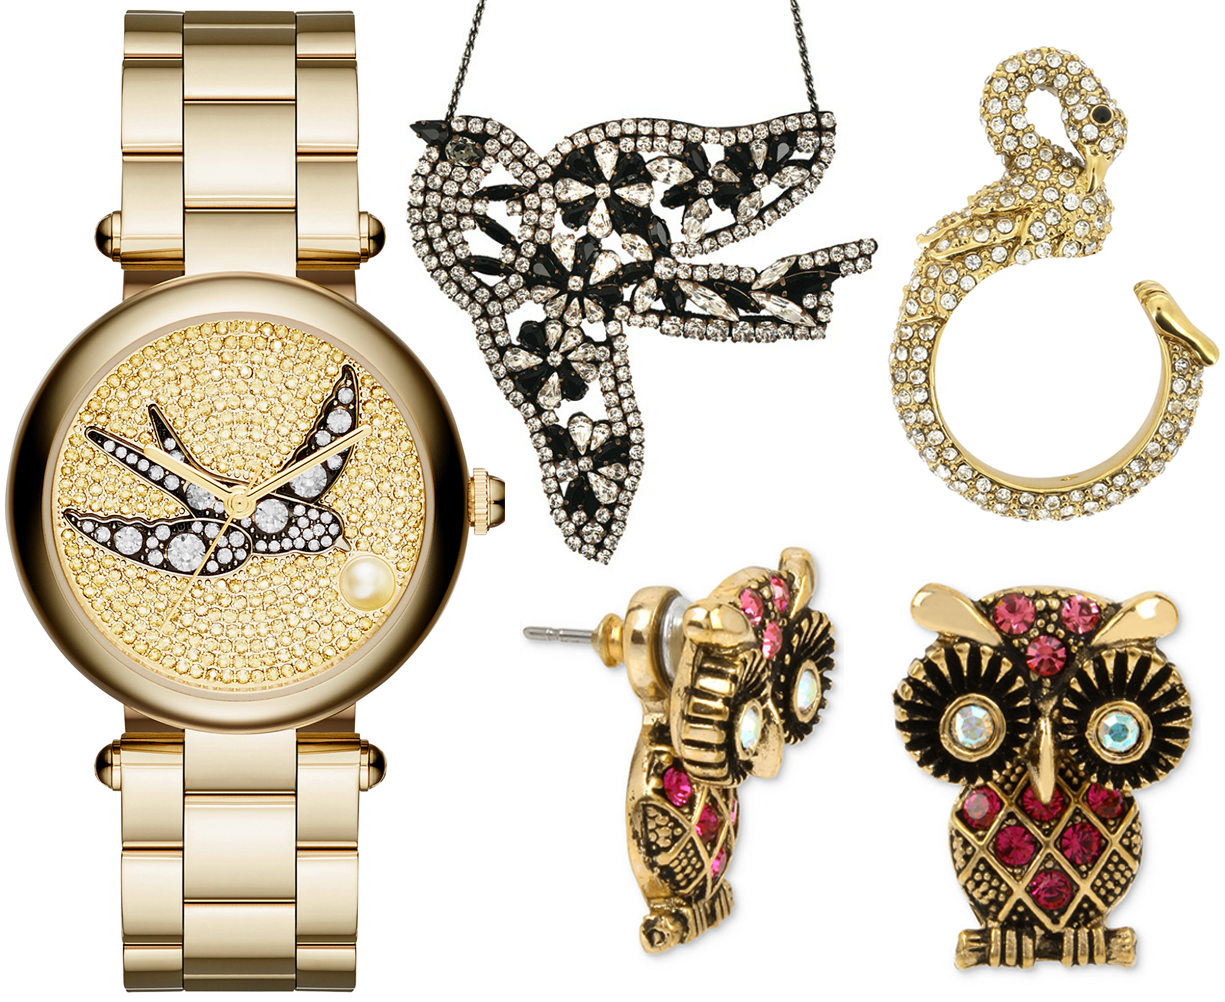 12-days-of-christmas-gift-crystal-bird-owl-watch-necklace-ring-earrings